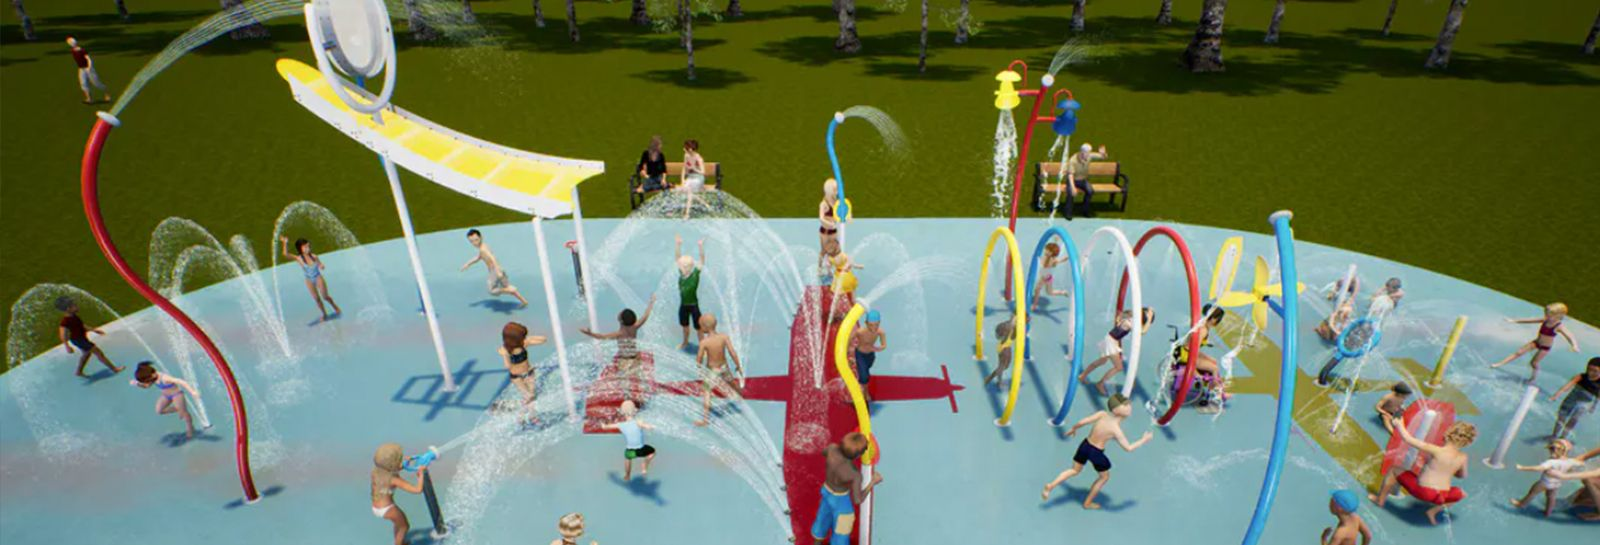 An artists impression of Stante Reserve Waterplay Park banner image